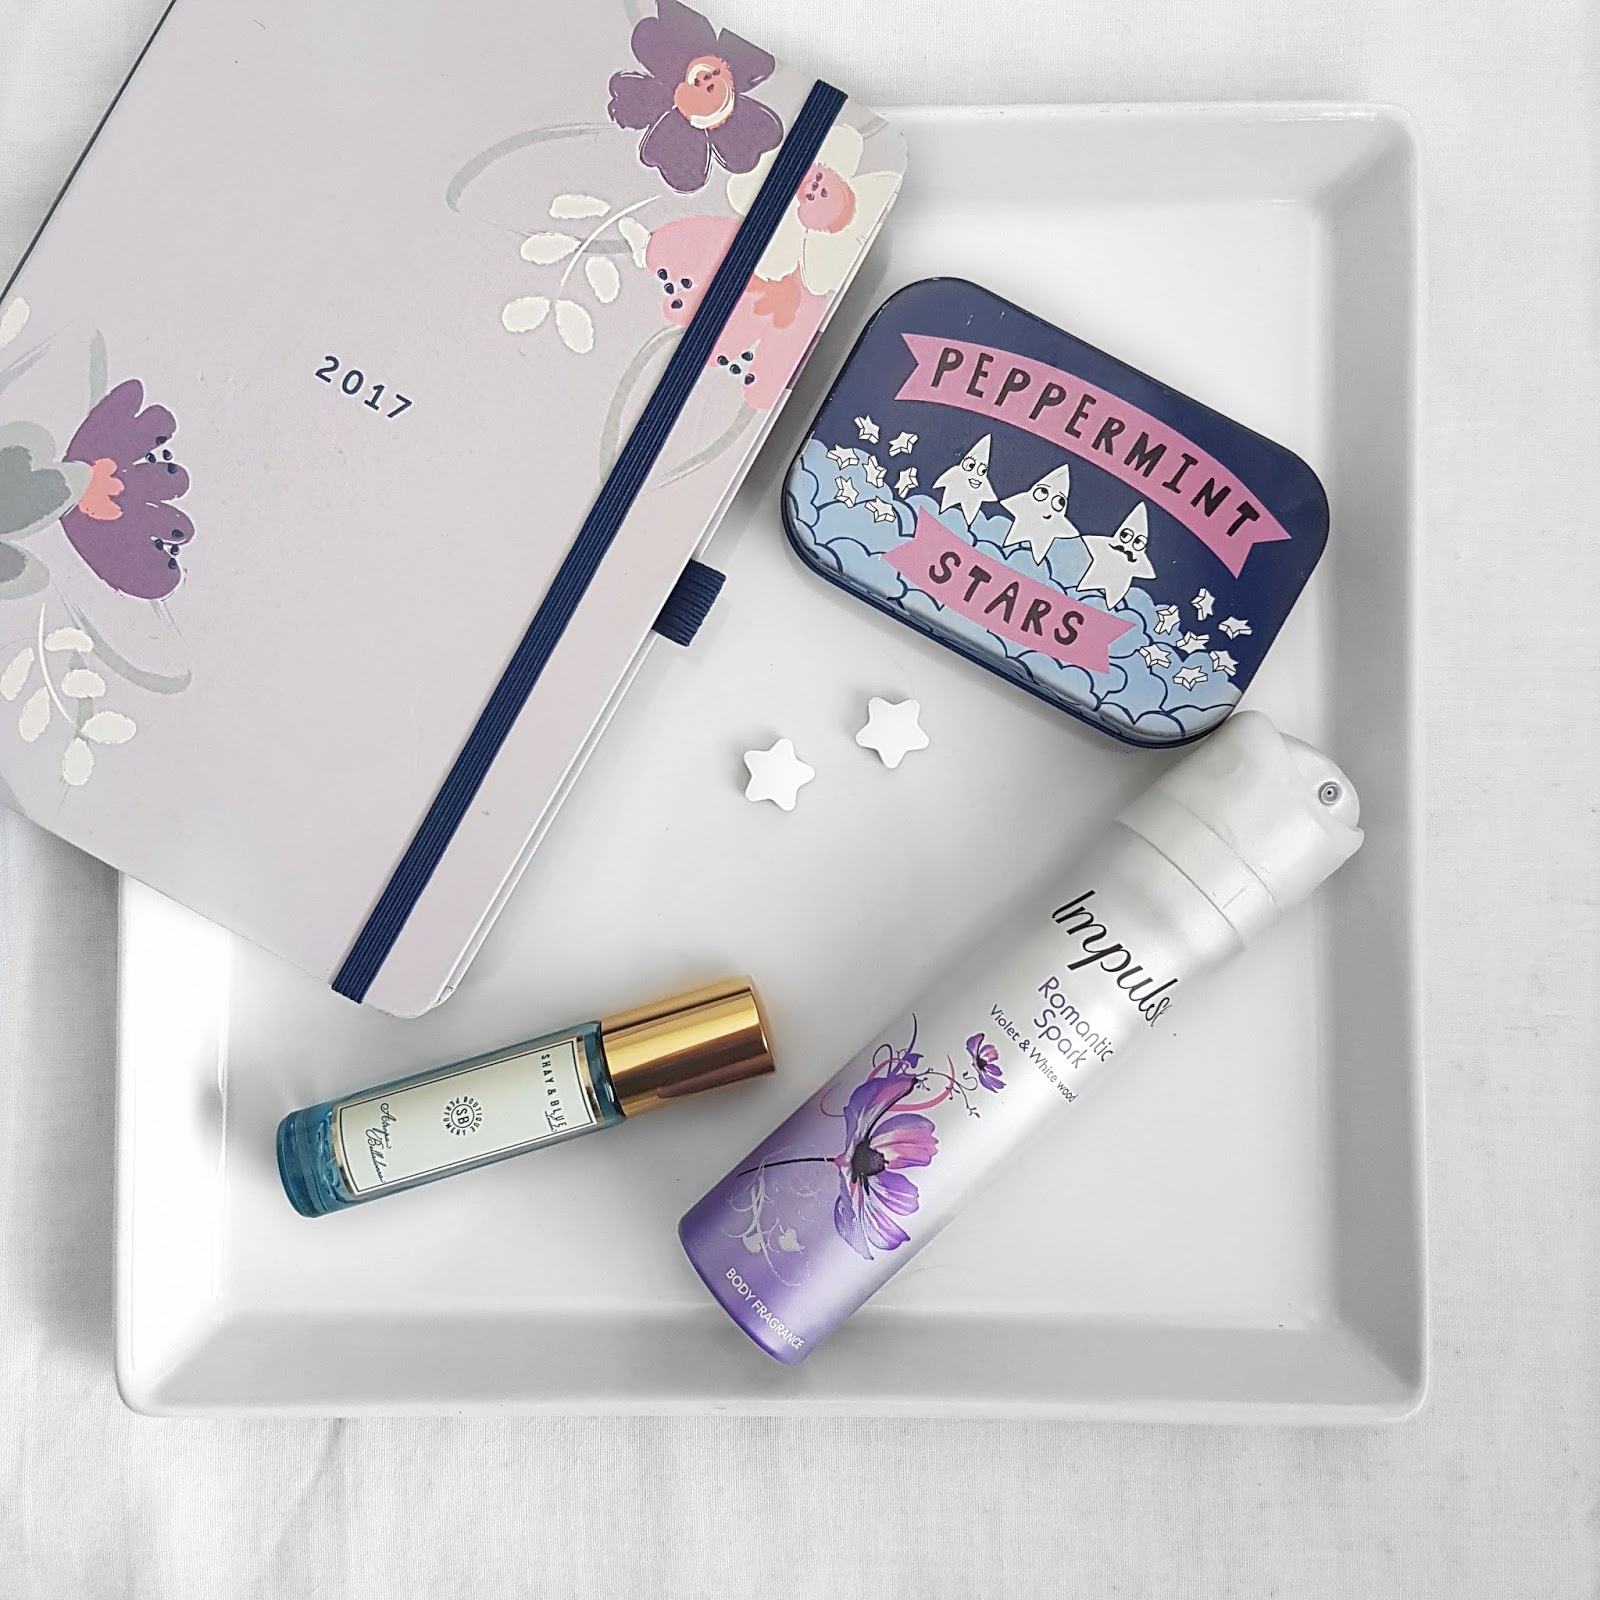 Diary and beauty products